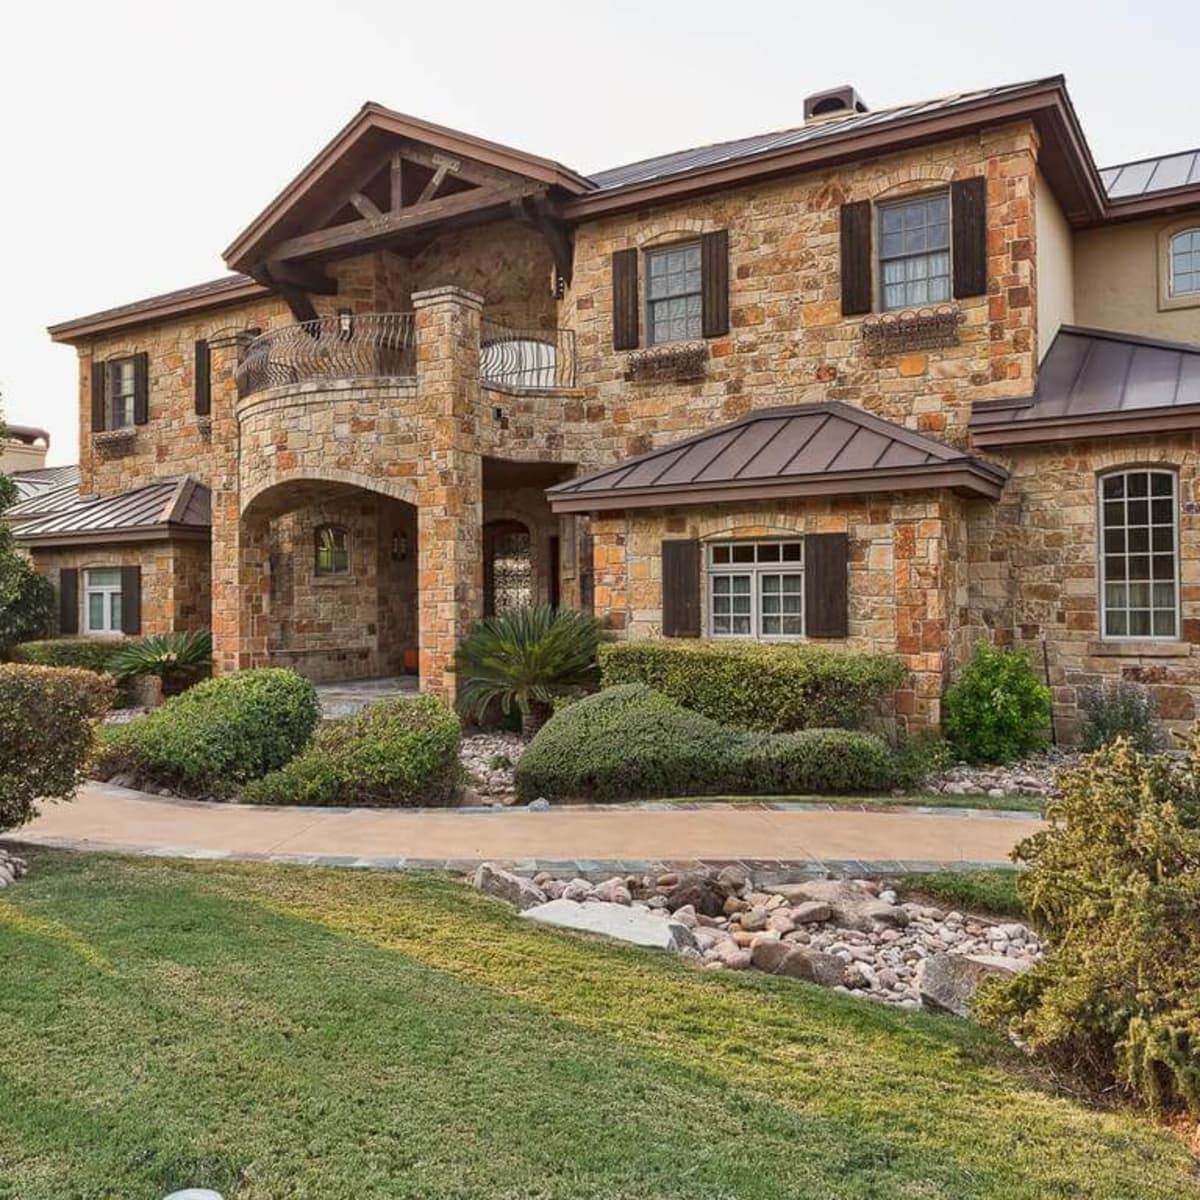 Austin home house 12006 Pleasant Panorama View 78738 Jeff Kent April 2016 front exterior